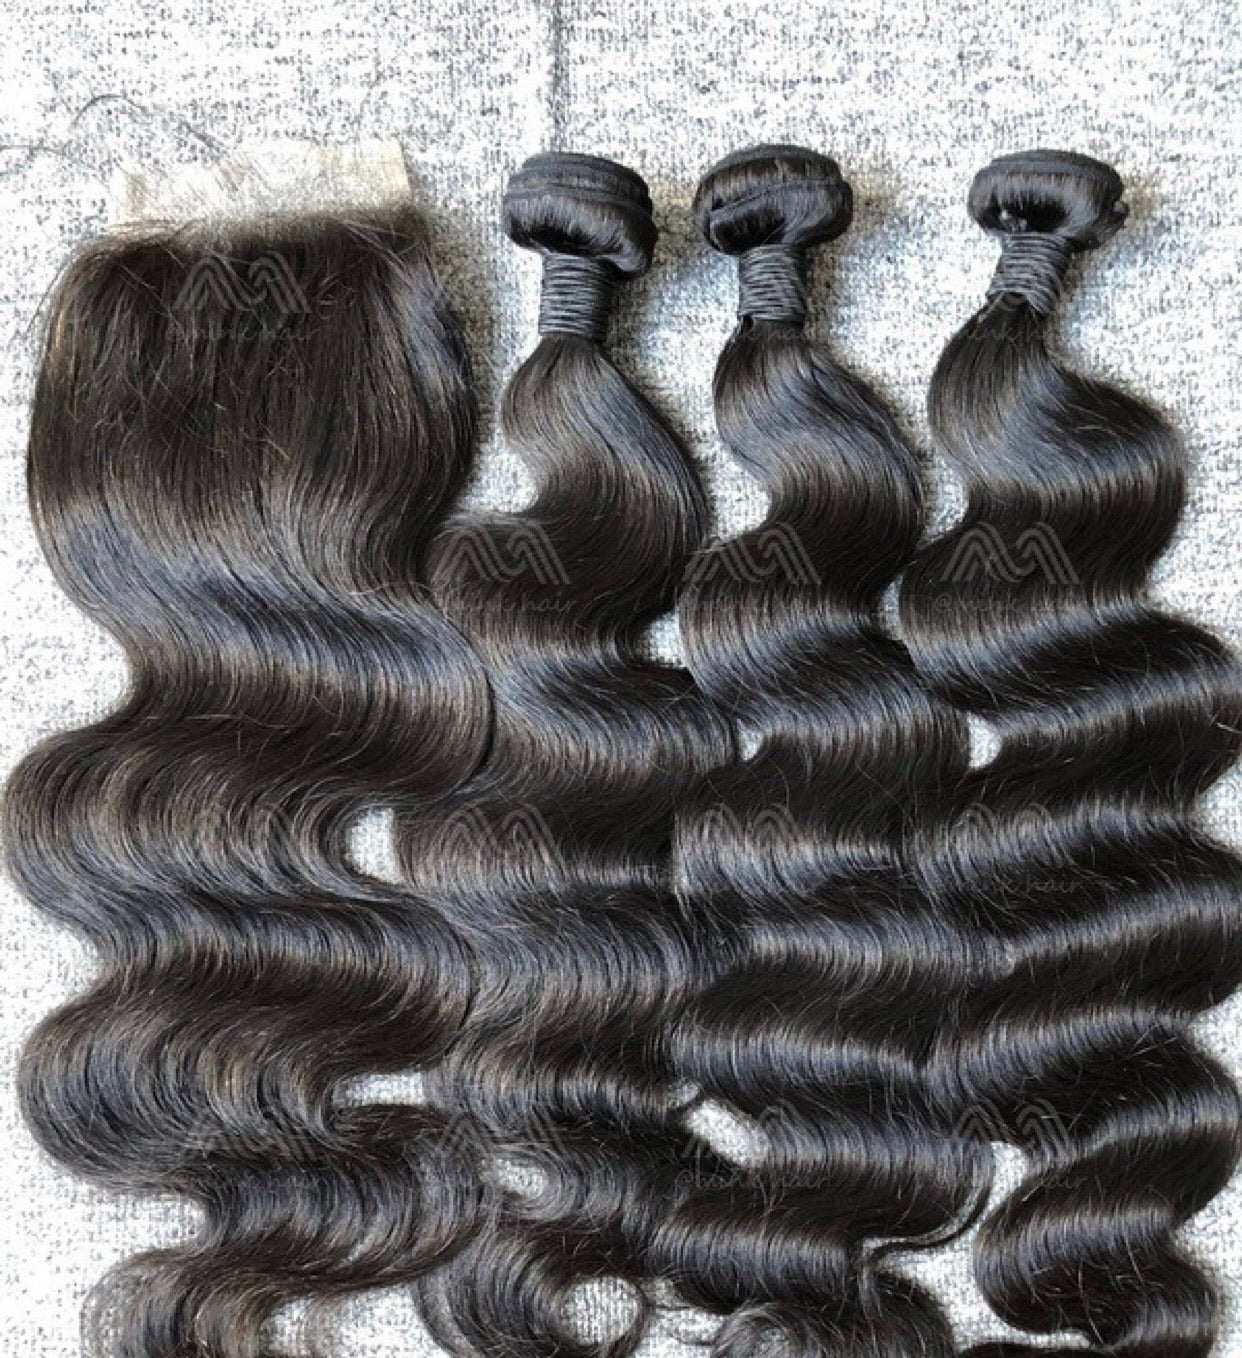 Mink Hair Straight/Body Wave 3 Bundles With 4x4 Closure Deals